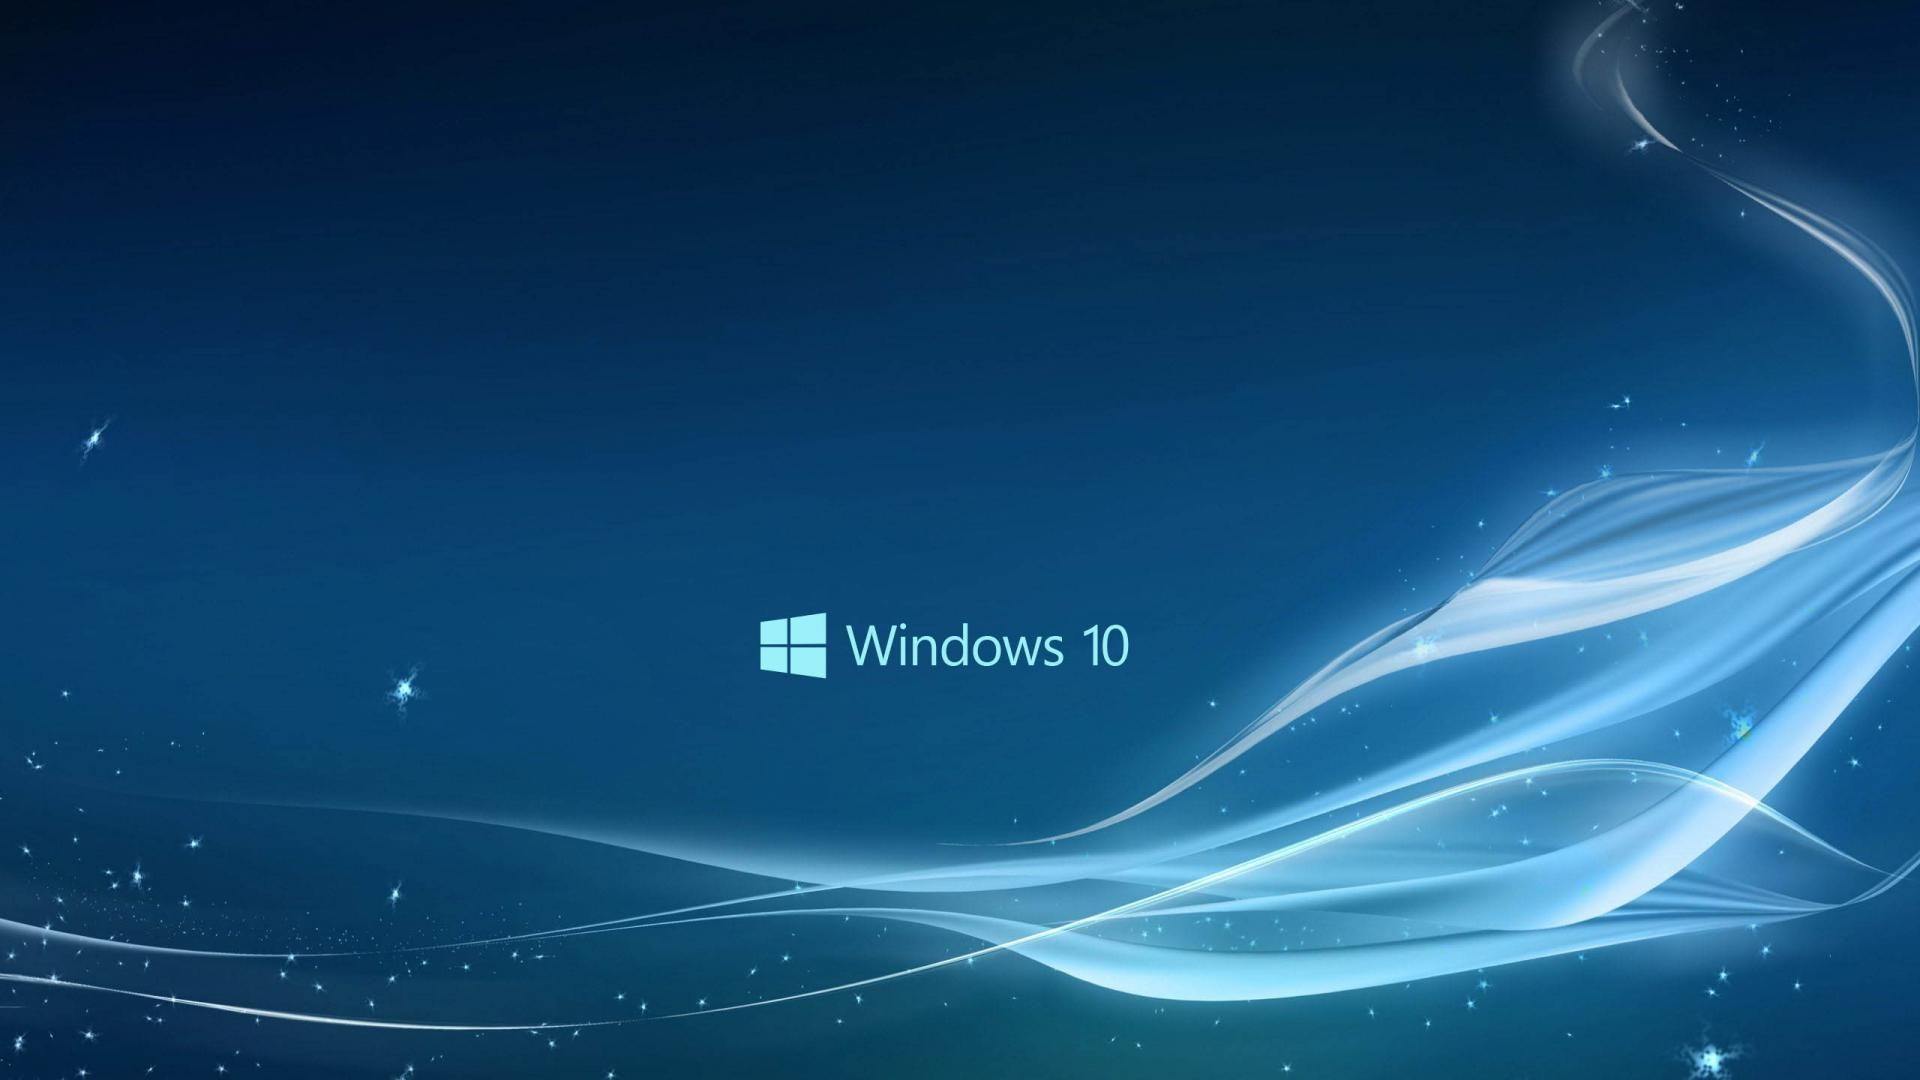 Windows 10 Wallpaper in Blue Abstract Stars and Waves   HD Wallpapers .